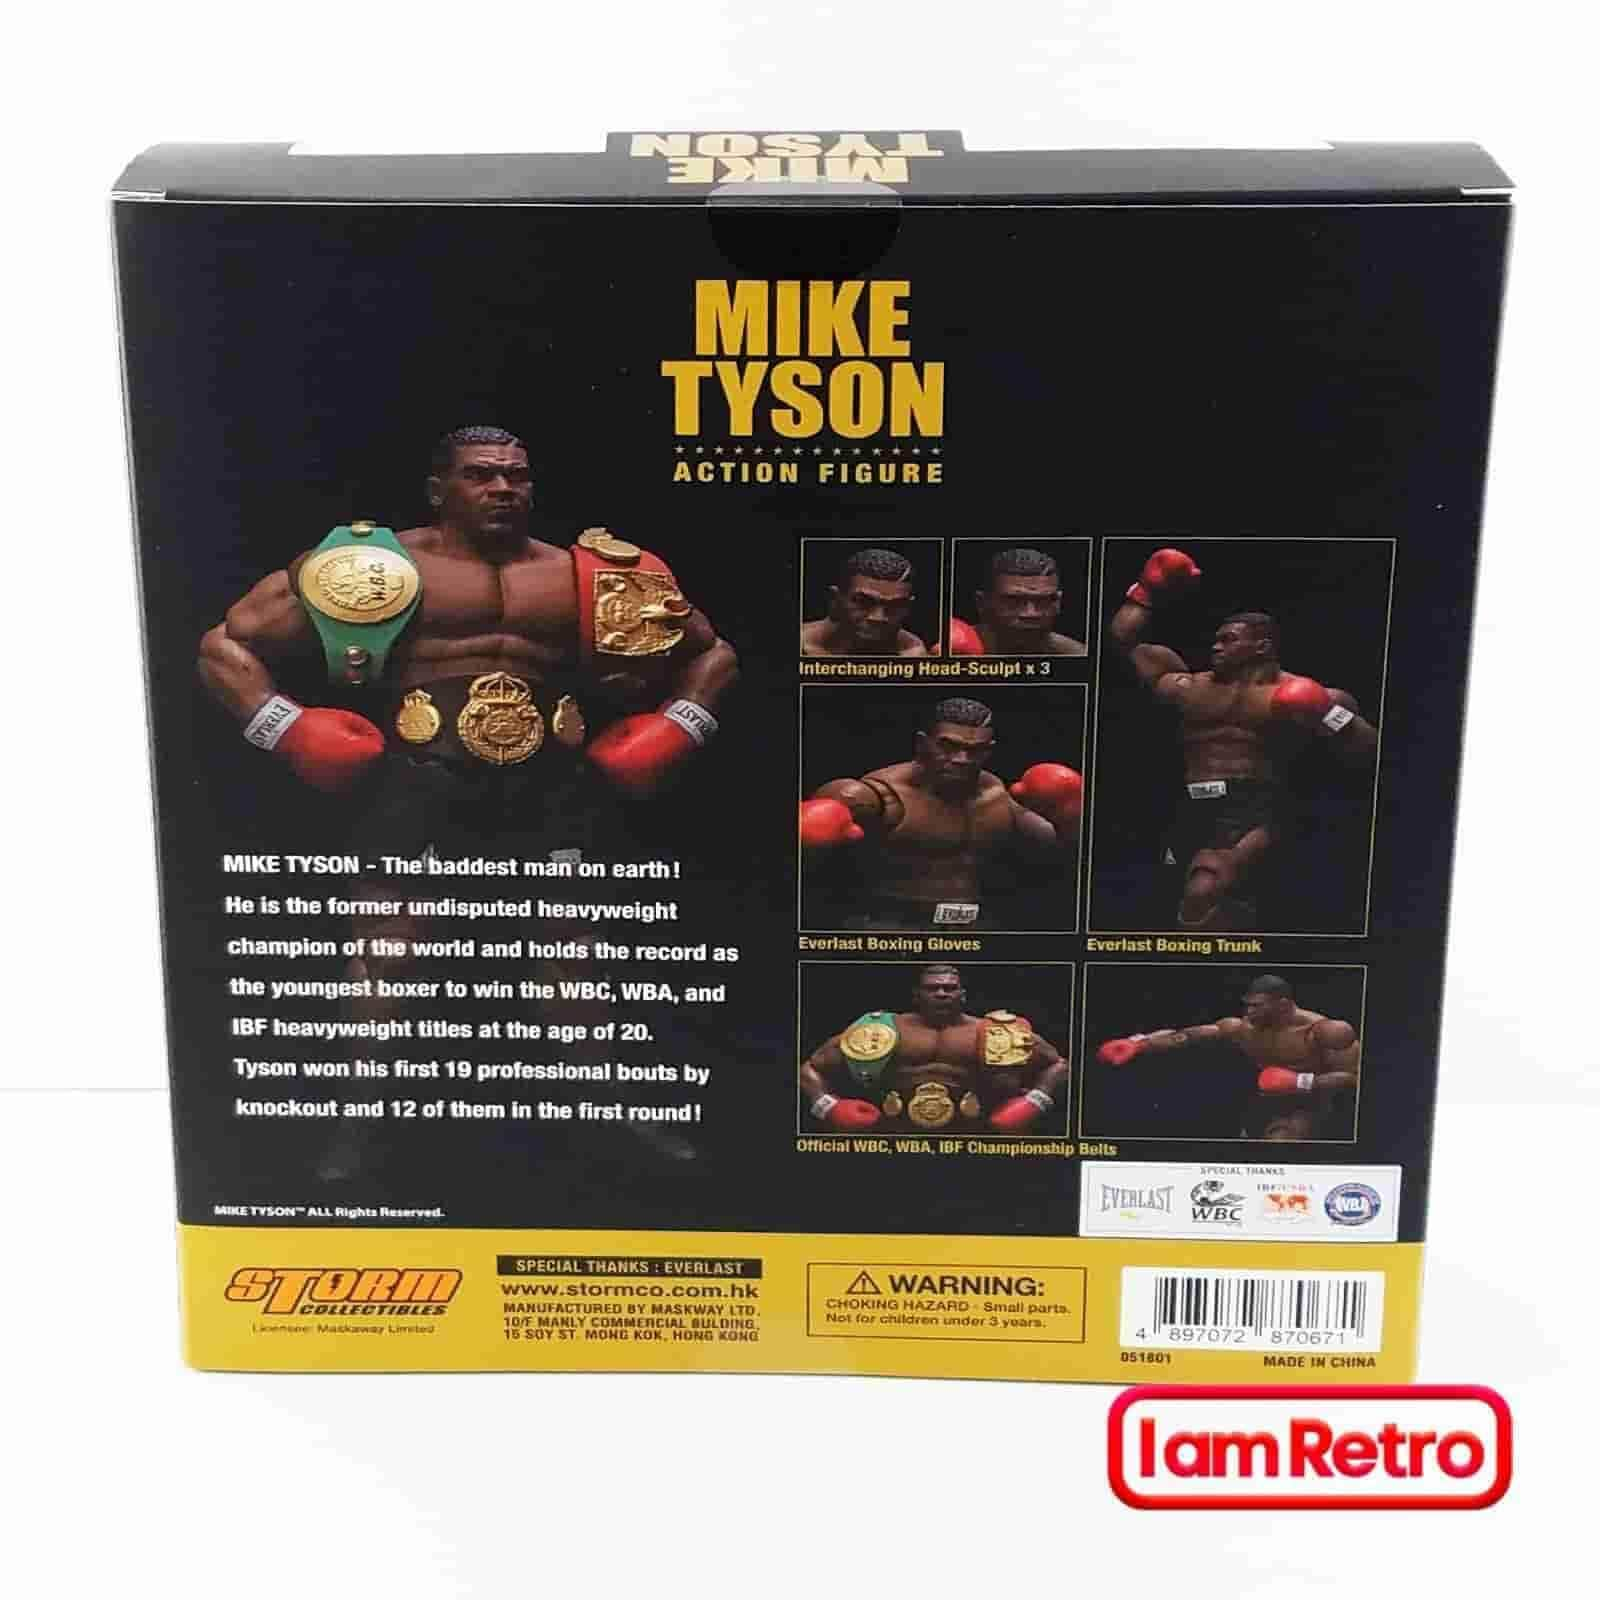 Mike Tyson 1/12 Scale Action Figure by Storm Collectibles In Stock